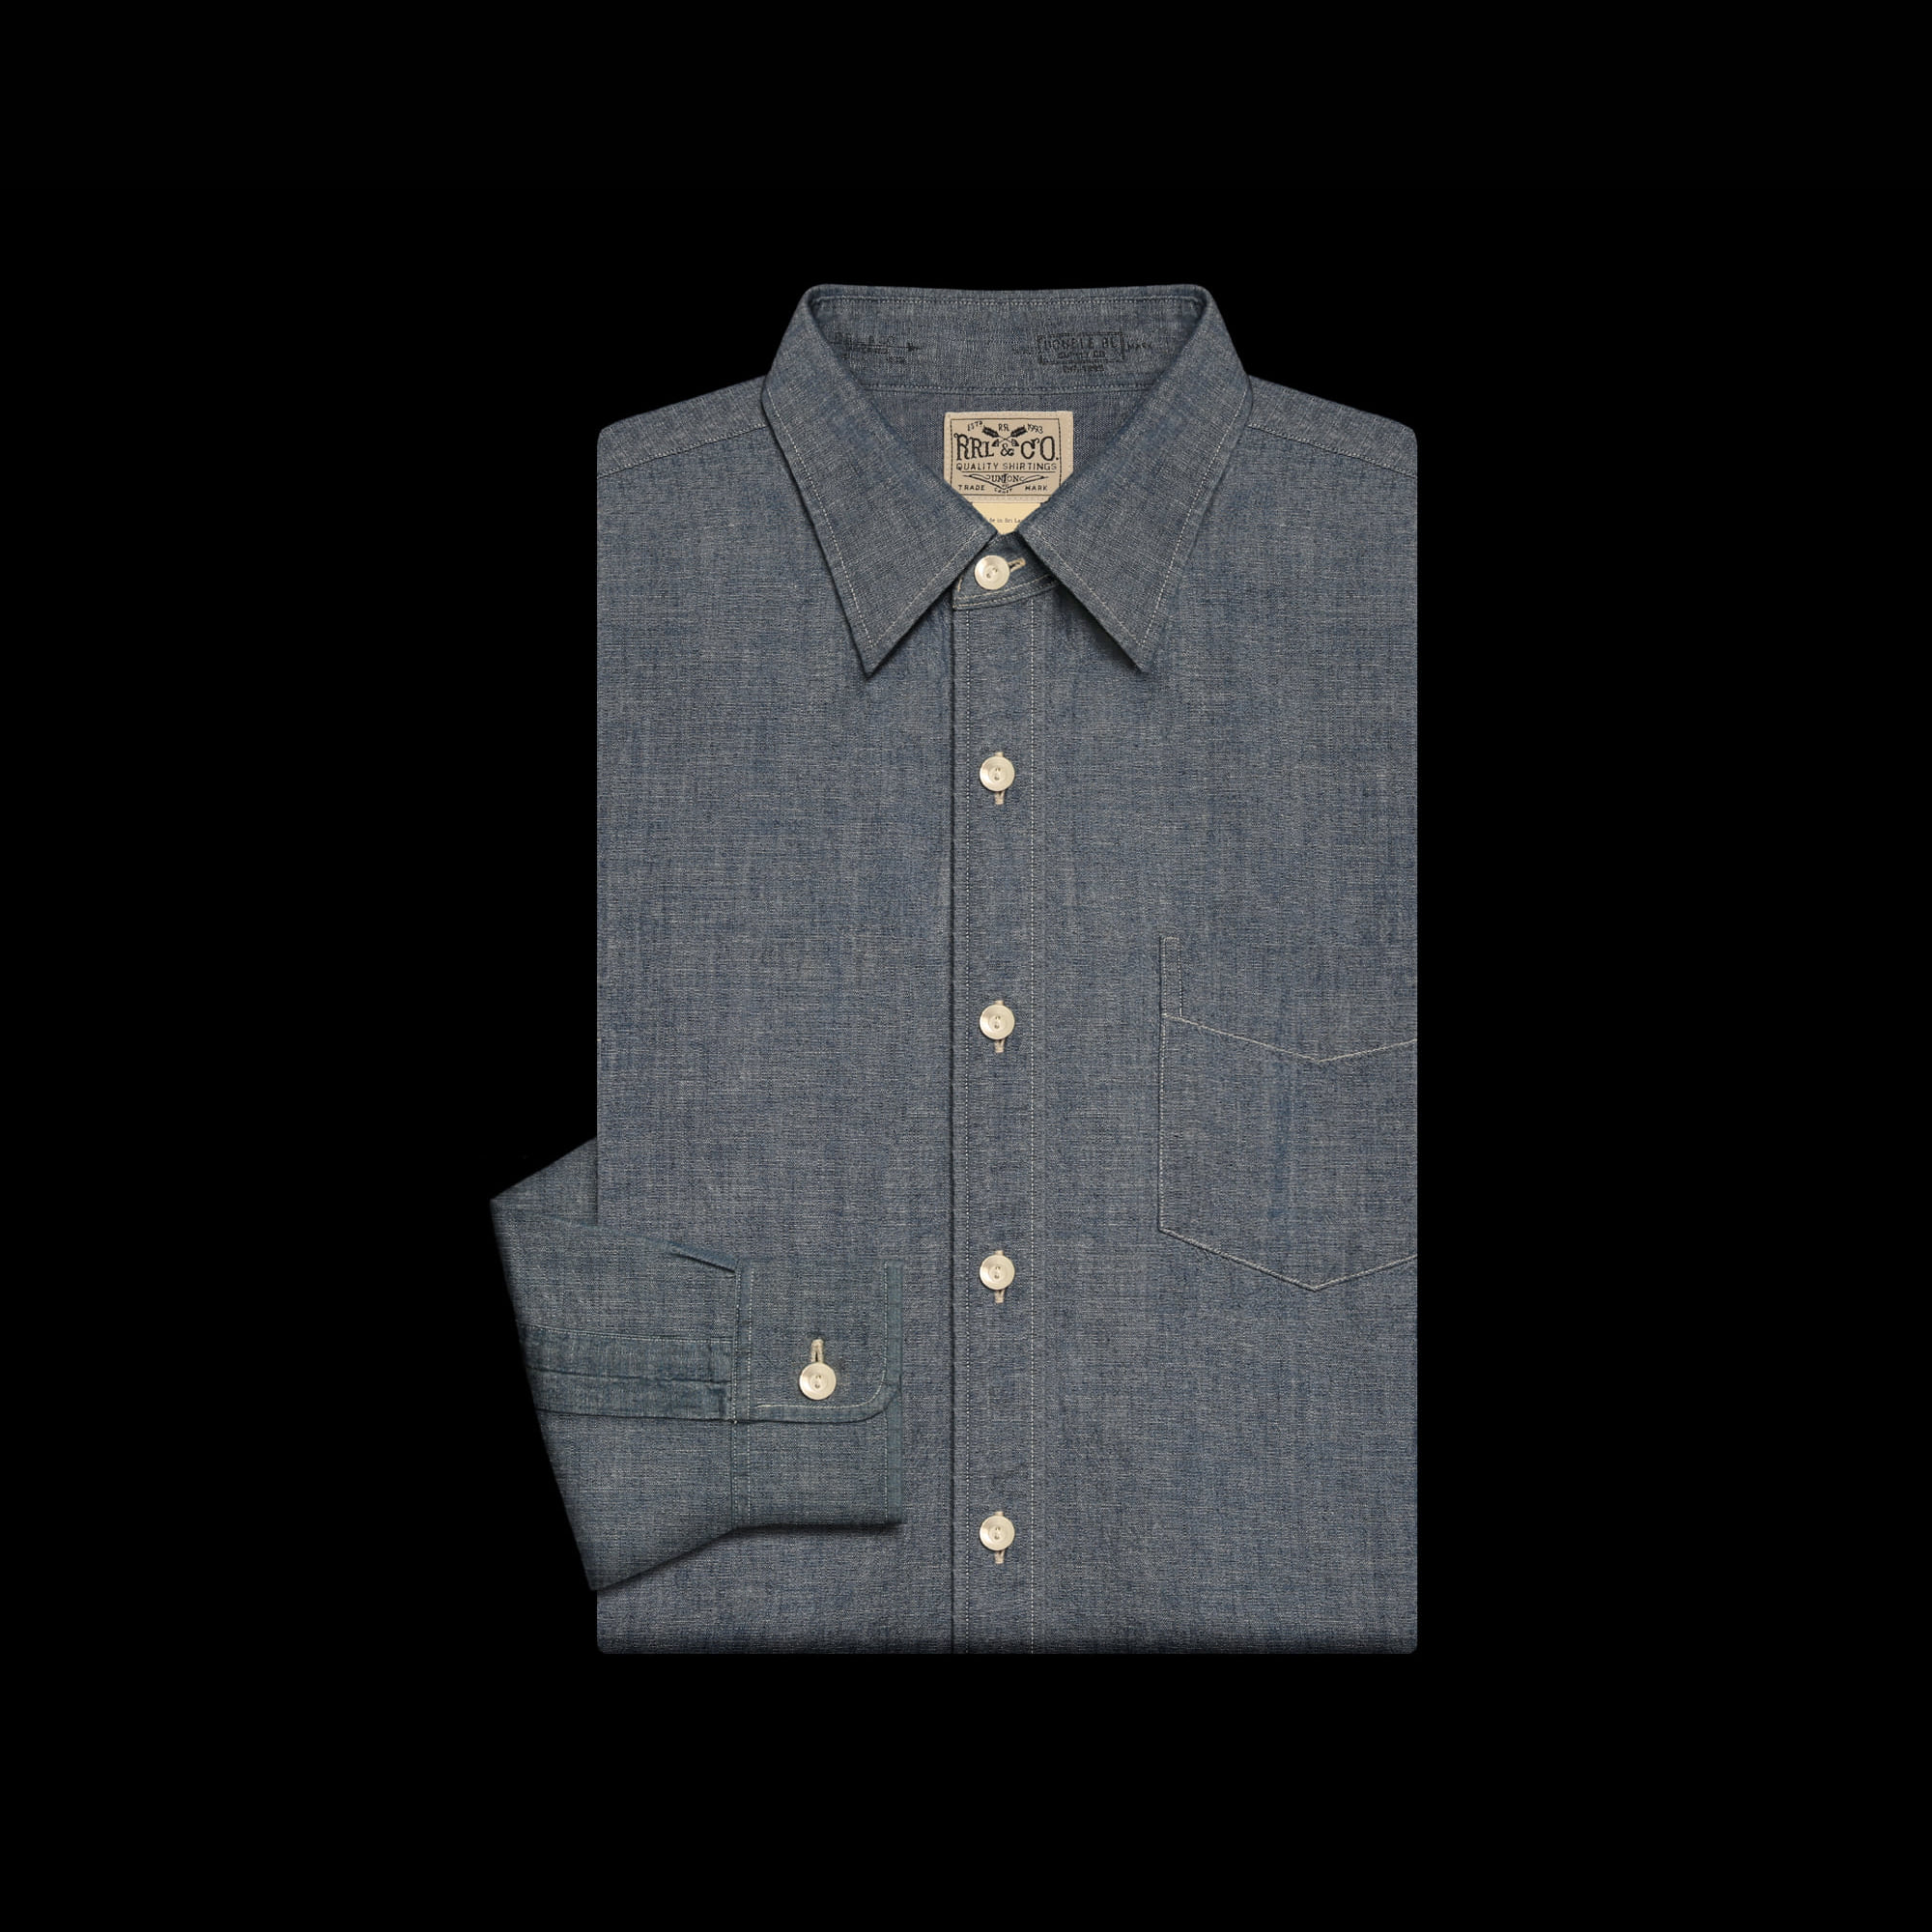 RRLCOTTON CHAMBRAY SHIRT